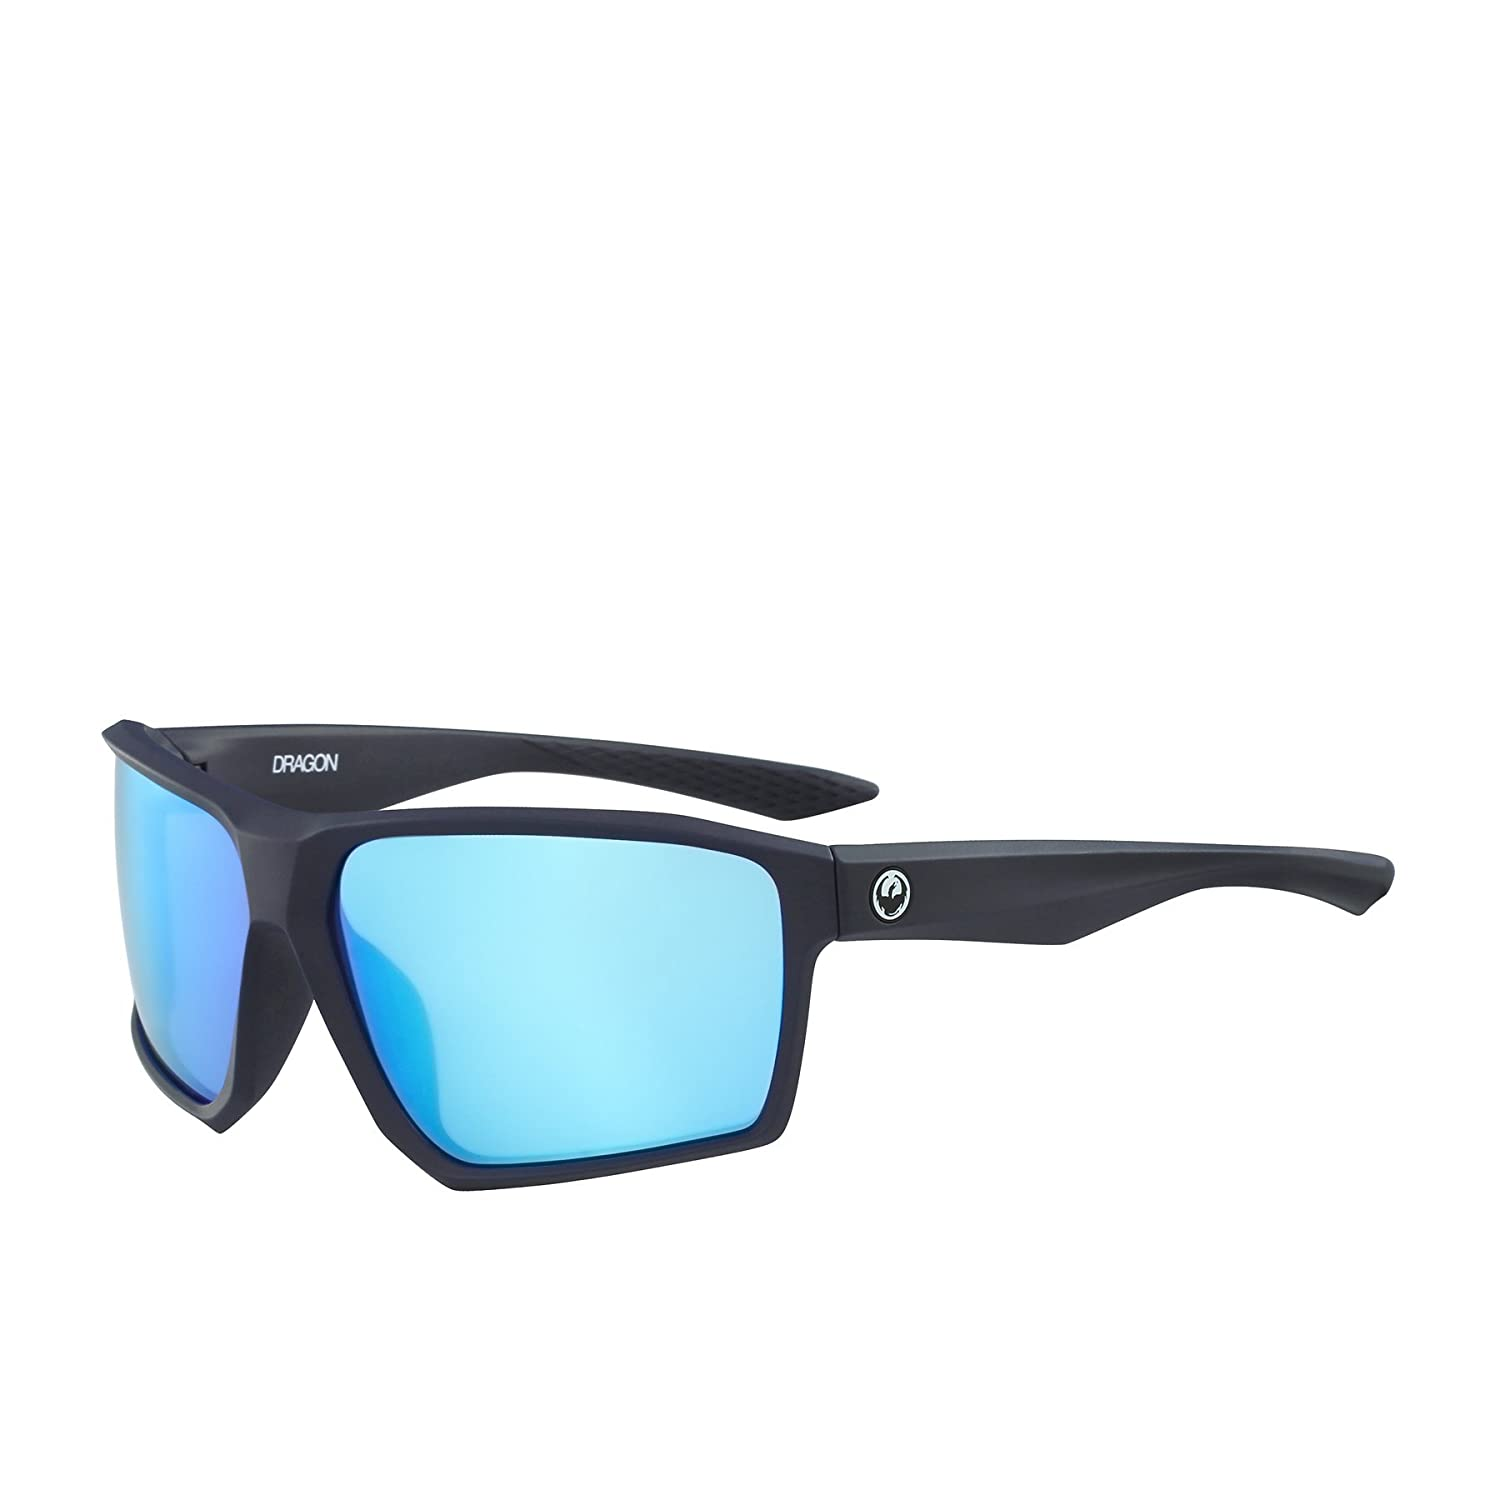 8f2871b3c77 Dragon Alliance Tenzig Matte Slate Frame with Blue Ion Lens Sunglasses   Amazon.co.uk  Clothing